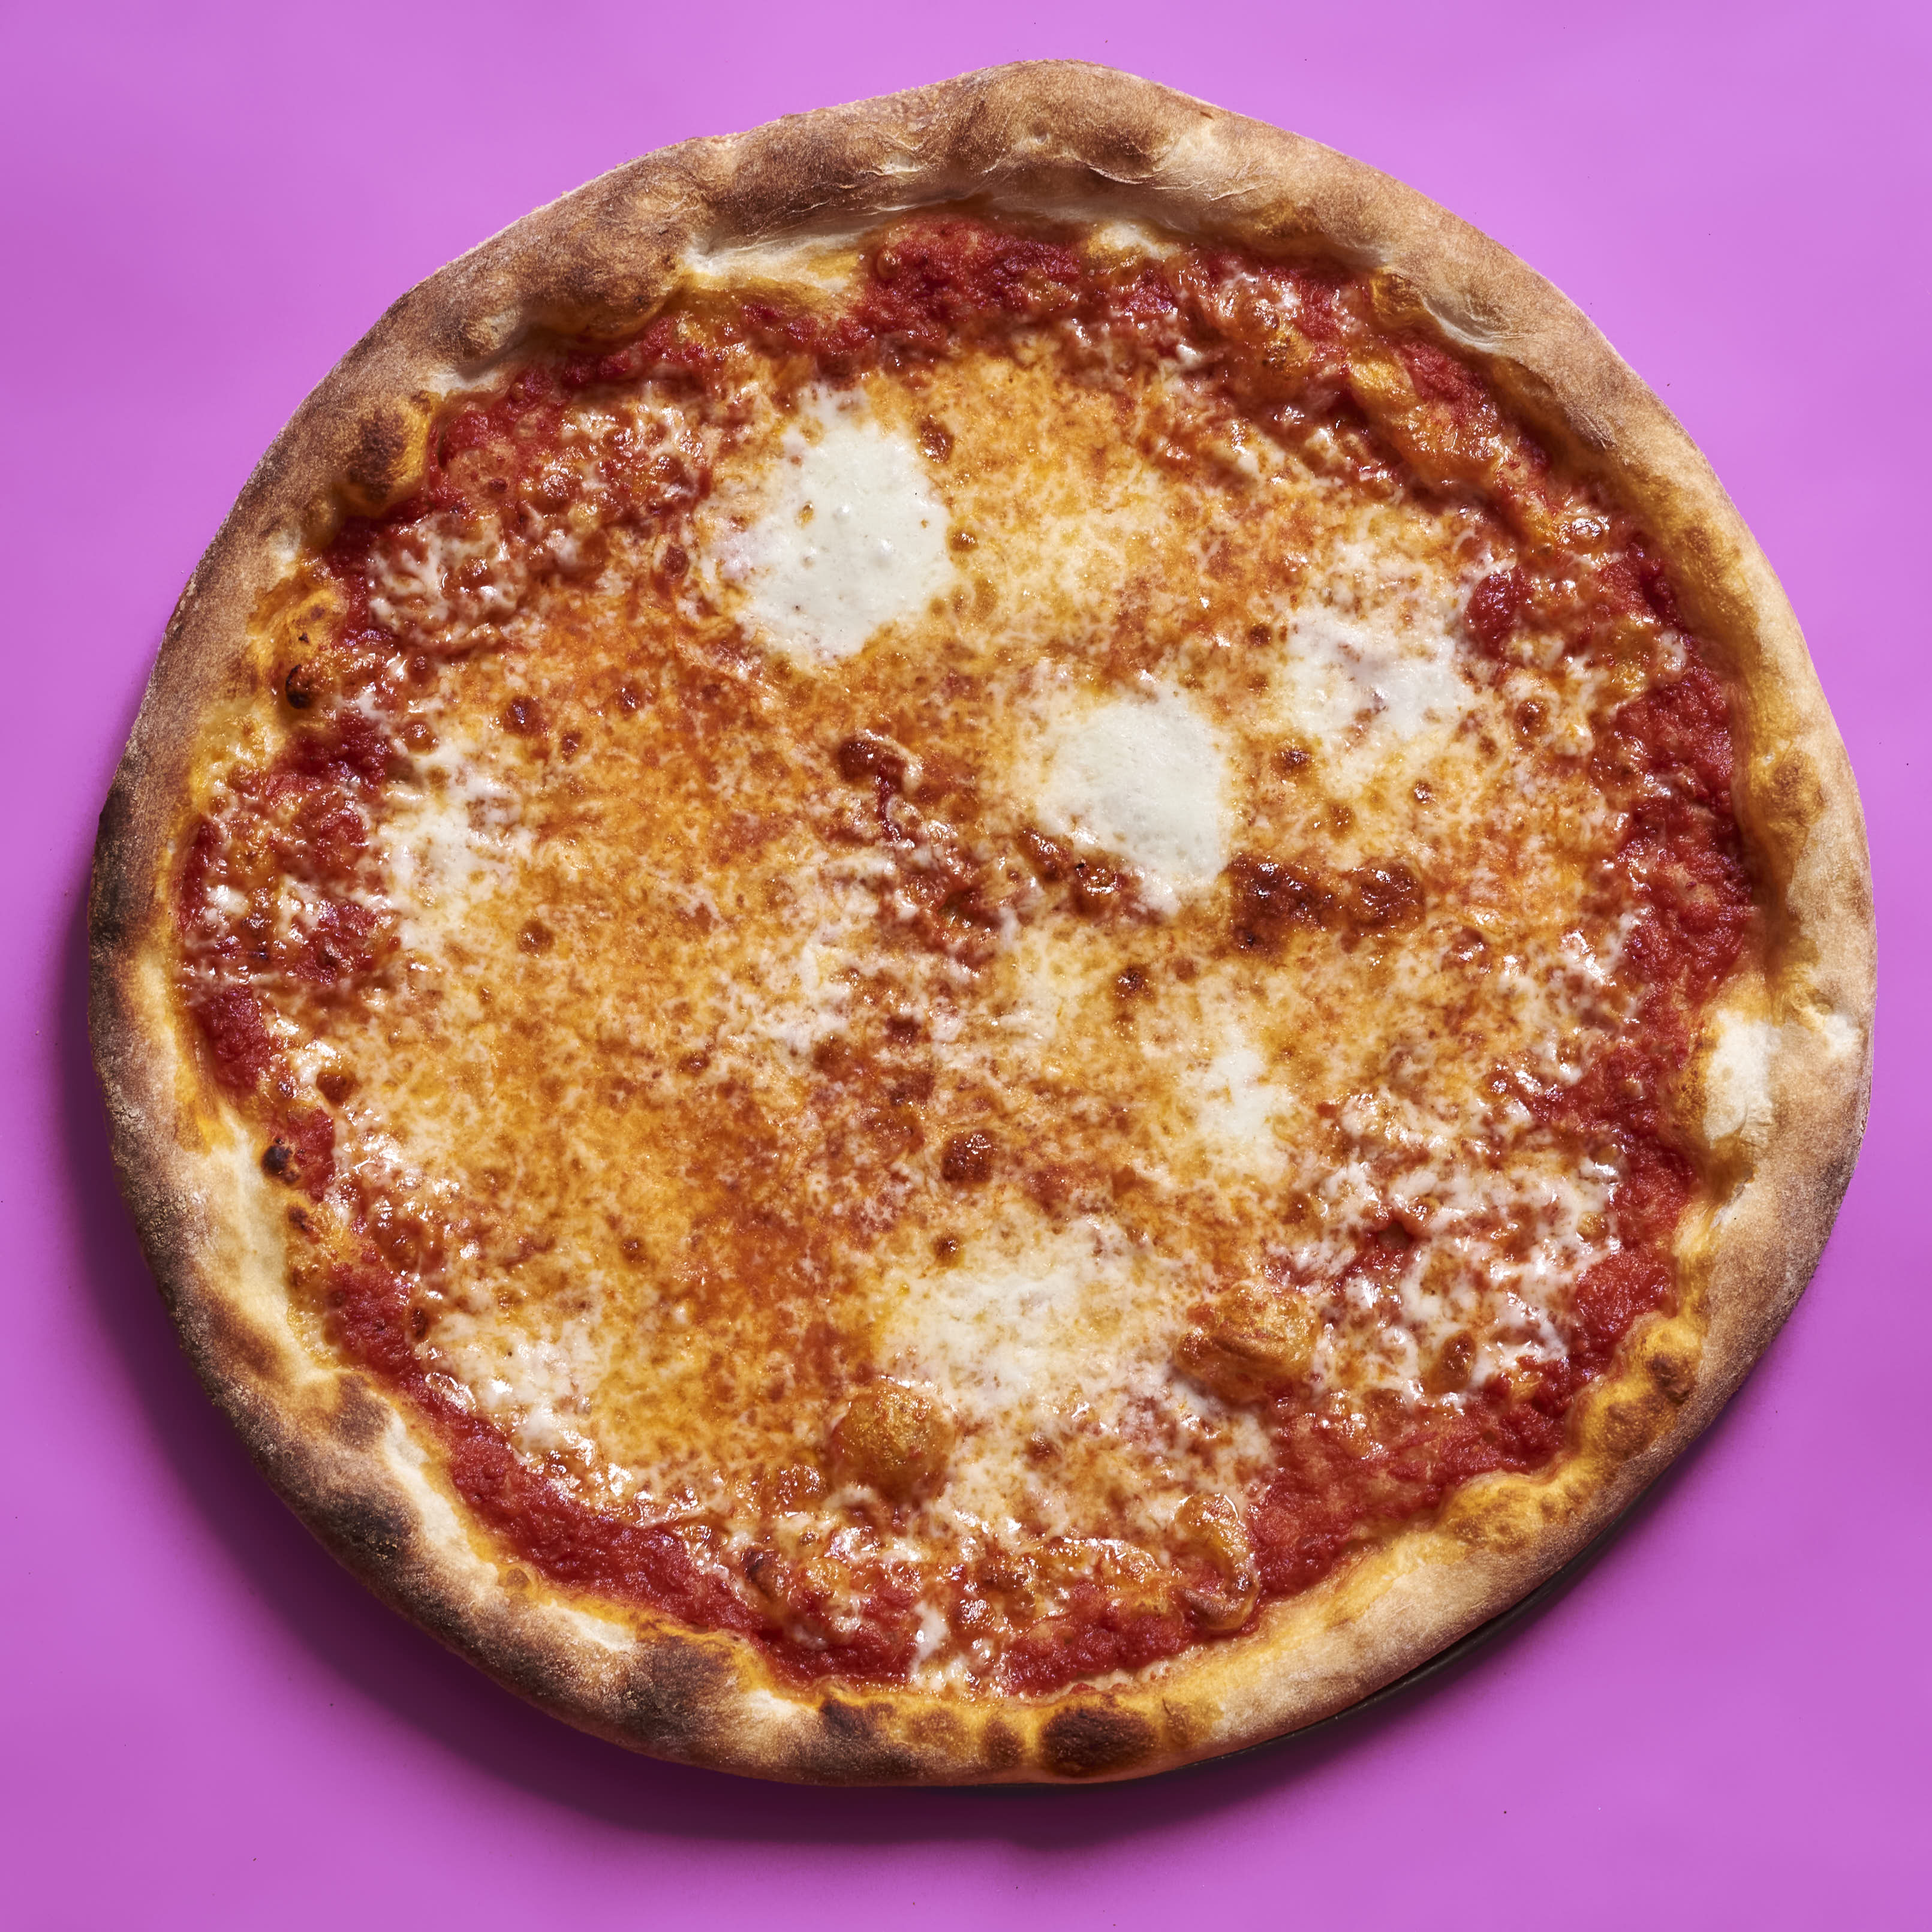 A pizza with tomato sauce, aged mozzarella, and fresh mozzarella. Baked in a typical home oven on a 3/8-inch-thick steel plate.